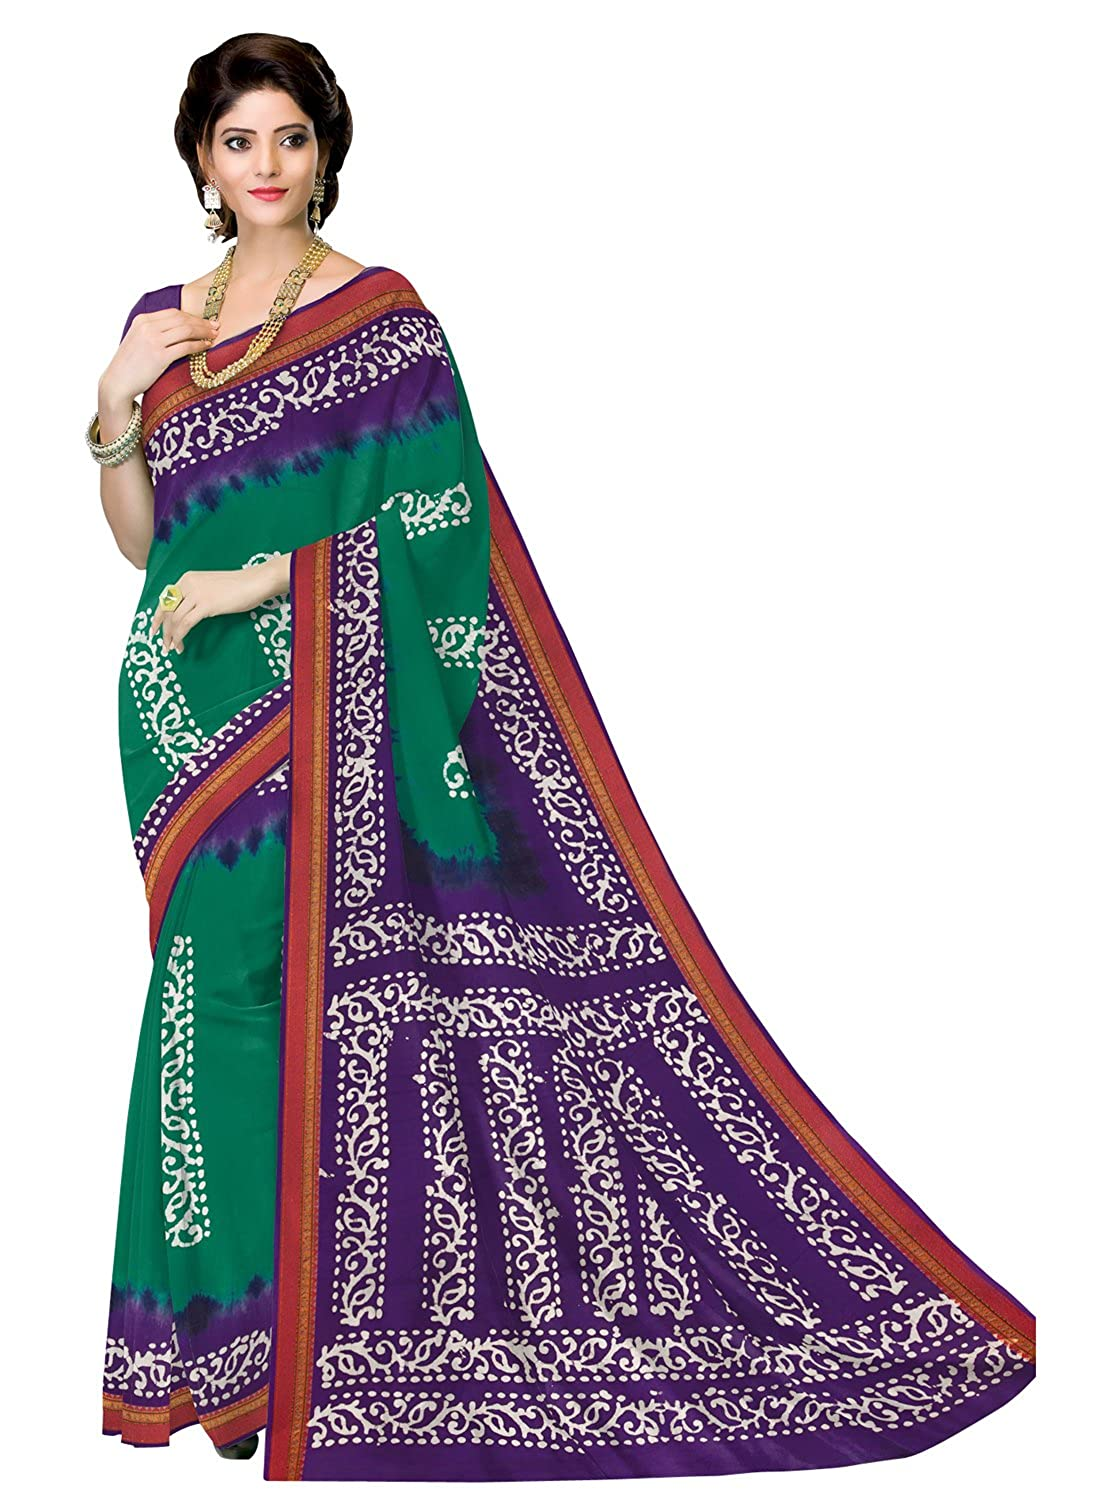 AngelFab Women's Purple and Green Printed Batik Saree with Unstiched Blouse